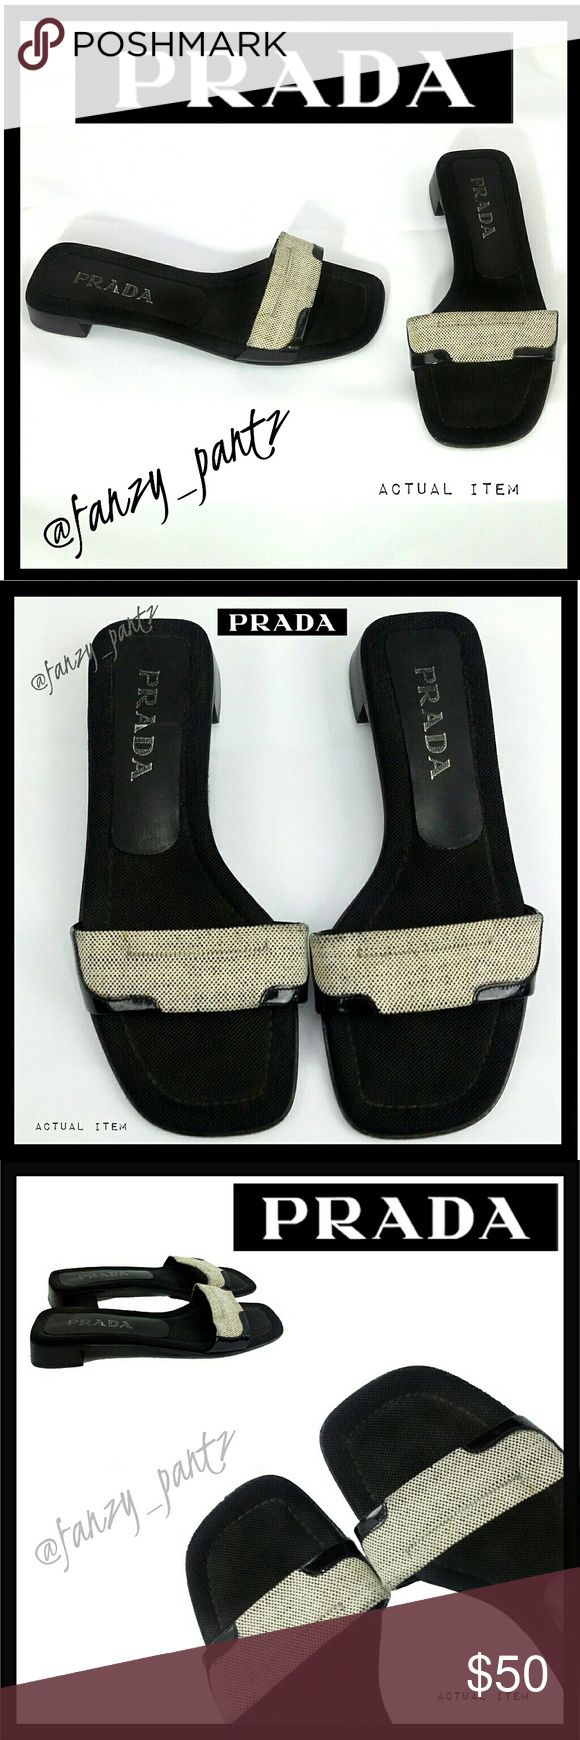 """🌴 Prada slide on sandals Cute single strap slide on sandals with a .75"""" heel lift.   Light tan, or dark cream,  textured strap, cushioned insole. Excellent condition.  Size 37,  best fits 6.5 to 7 in my personal experience. If you are unsure about Prada sizing or EU conversions, feel free to ask for measurements to ensure fit. Buyers are responsible for knowing their size. ABSOLUTELY NO TRADES PLEASE! REASONABLE OFFERS WELCOME THROUGH OFFER FEATURE ONLY PLEASE!  04051750 Prada Shoes Sandals"""